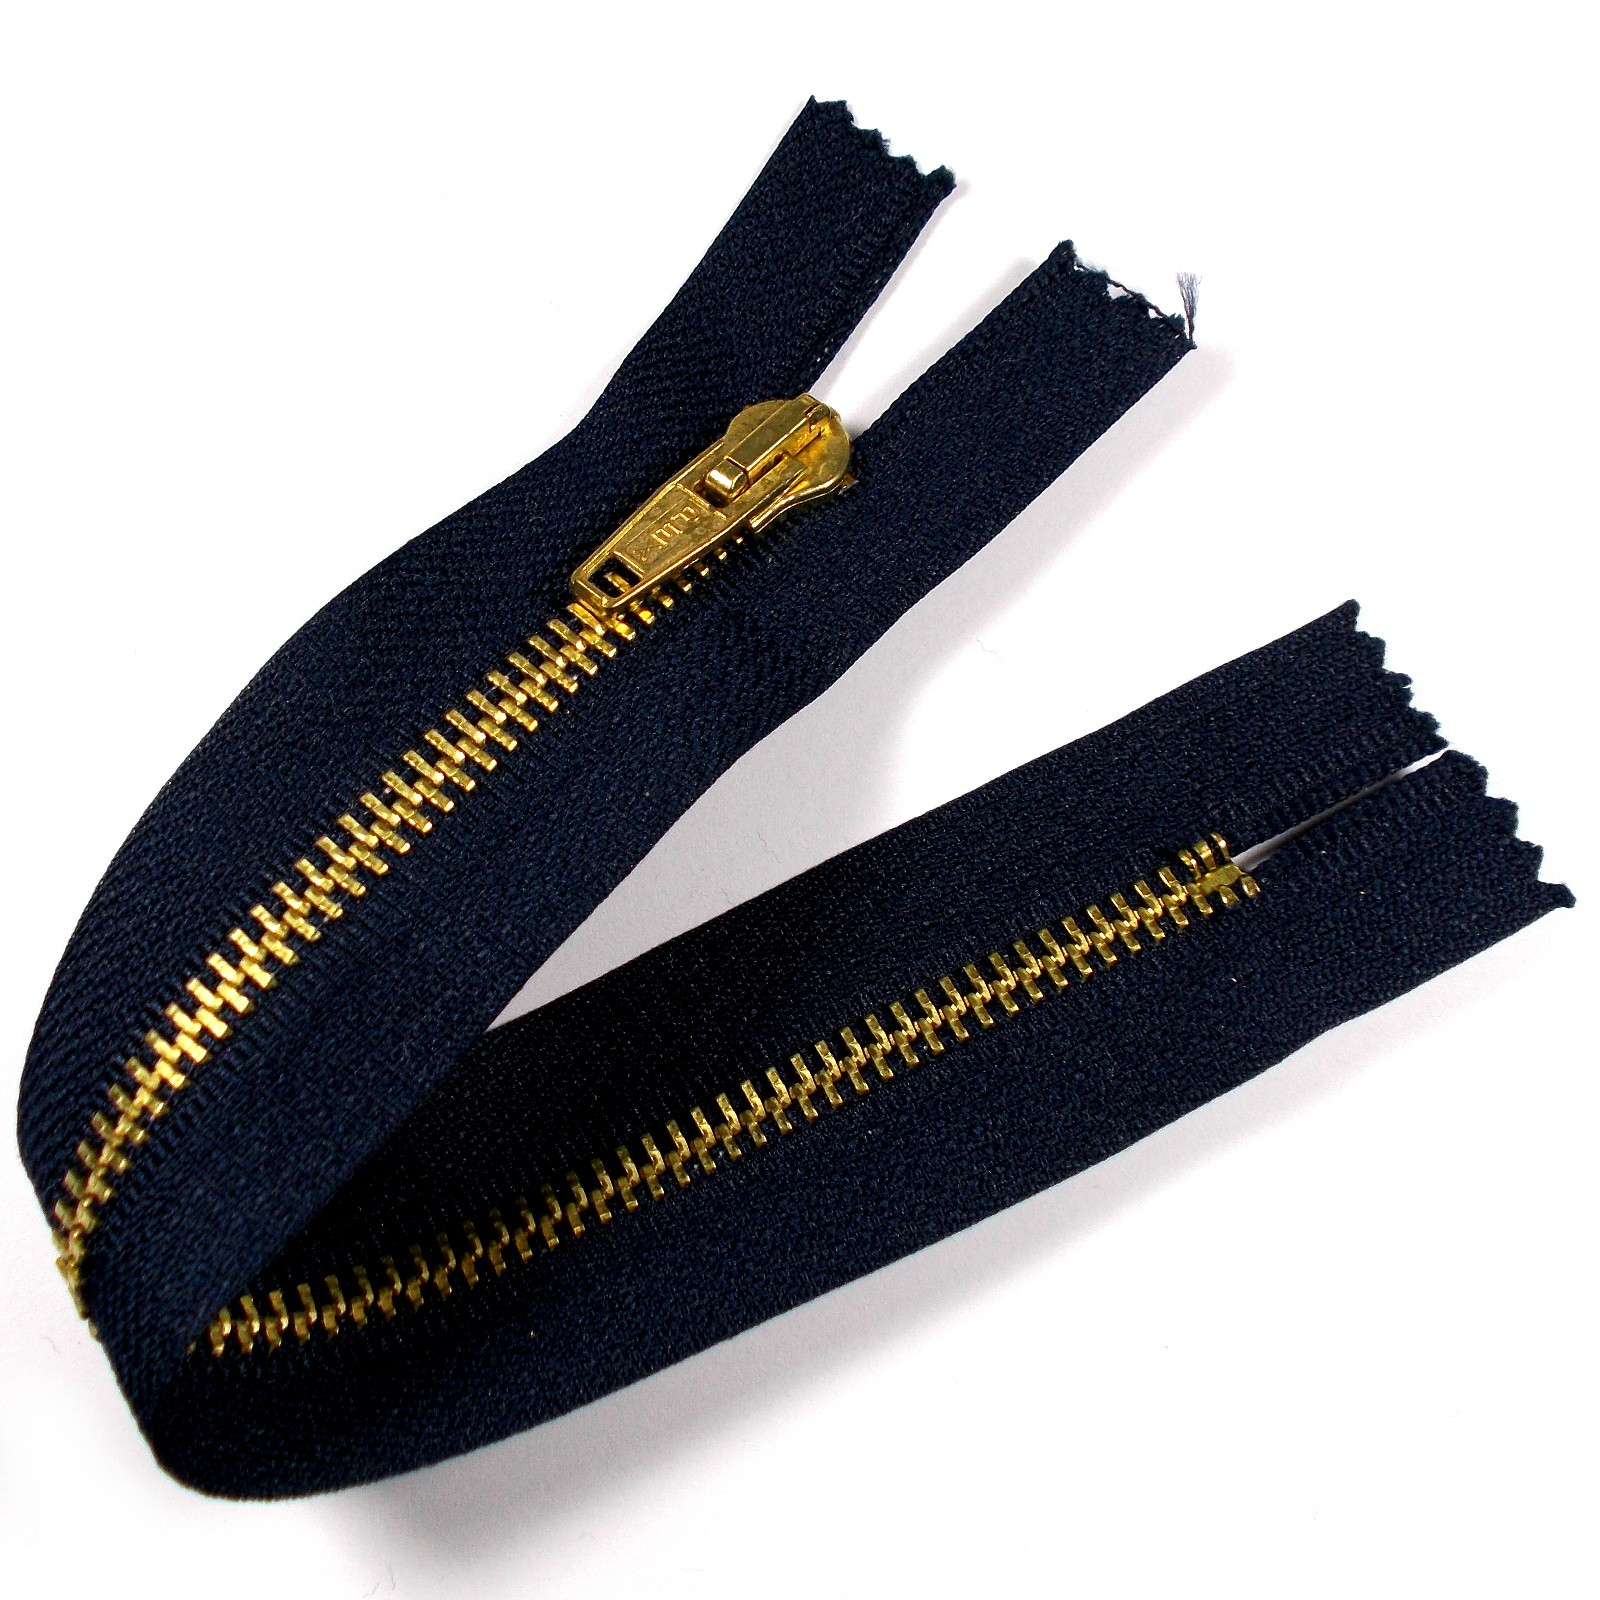 Gold Metal Trouser Jeans Zip Zipper 8 inch Dark Blue